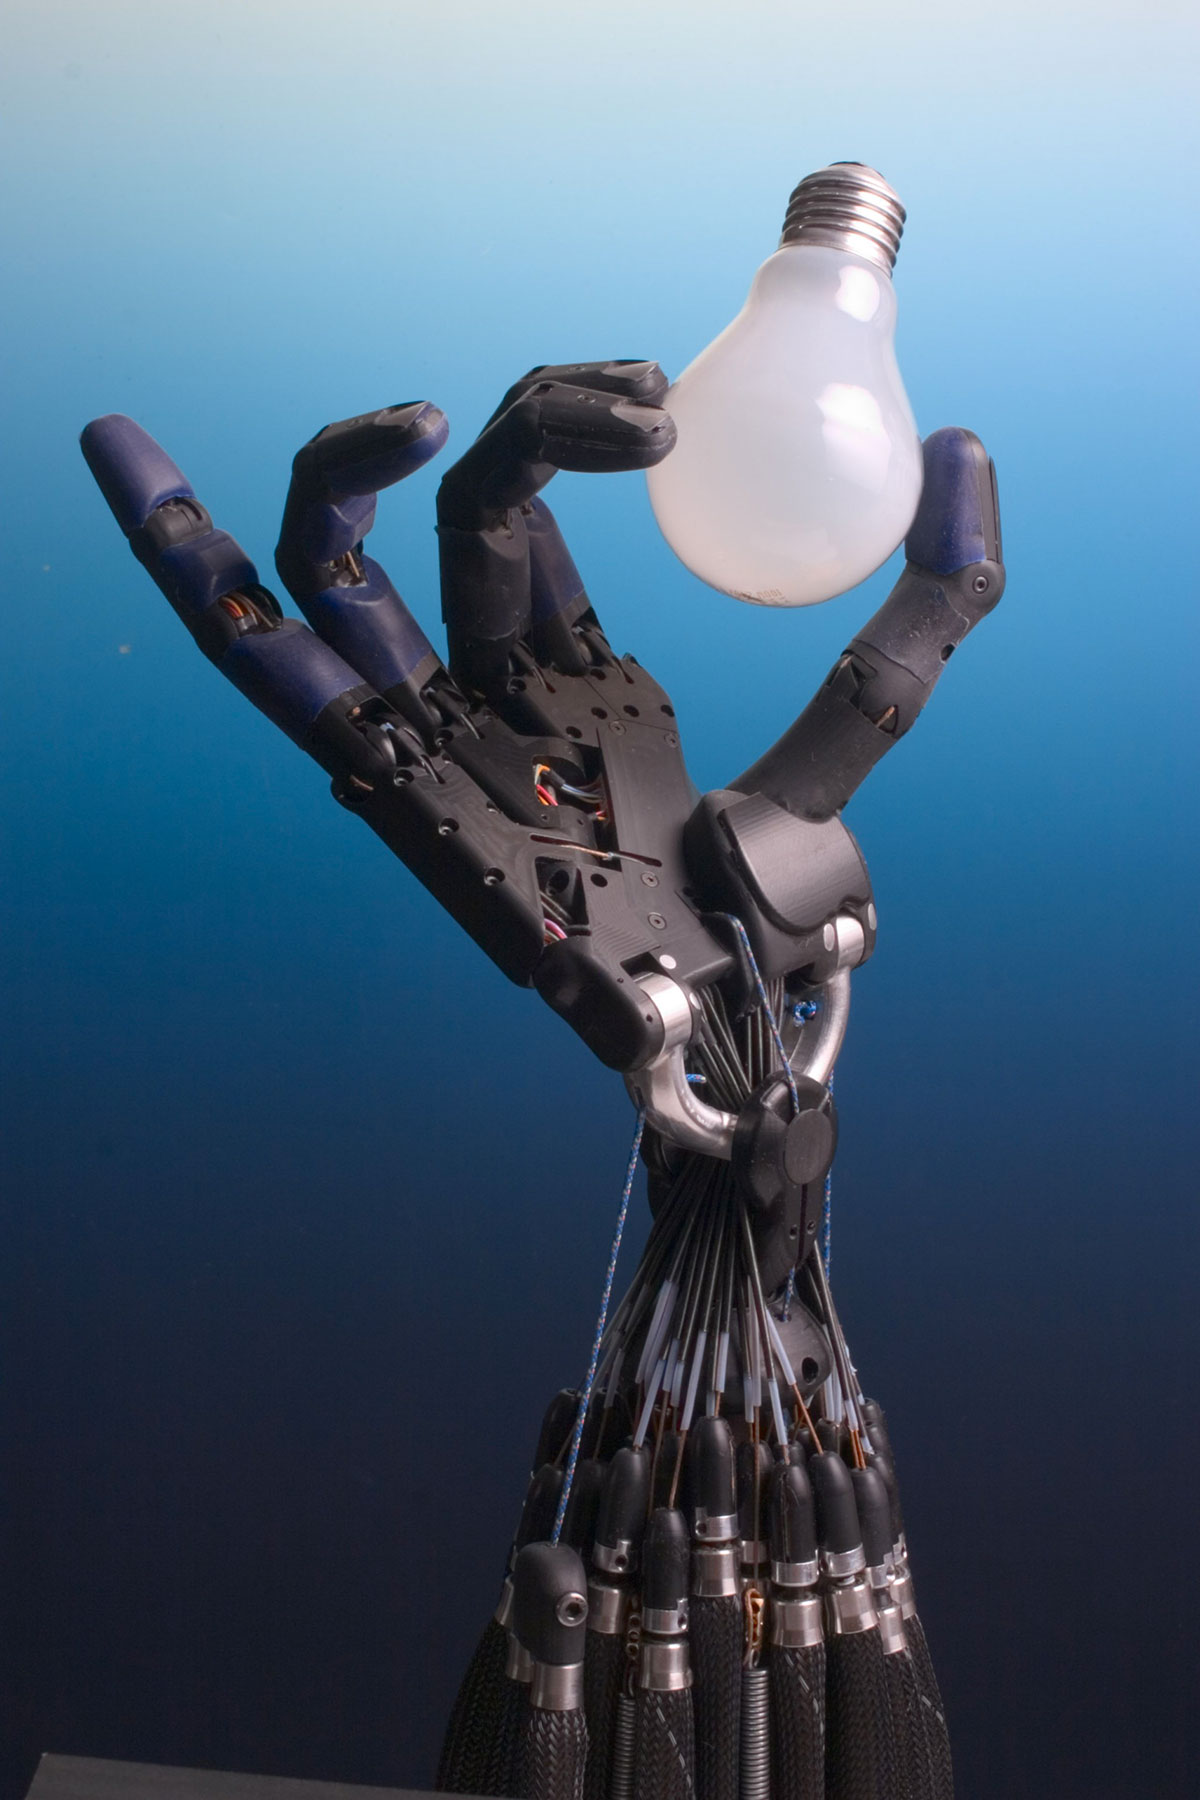 Dexterous Hand: An Ultrasensitive New Robotic Hand With A Sense Of Touch-